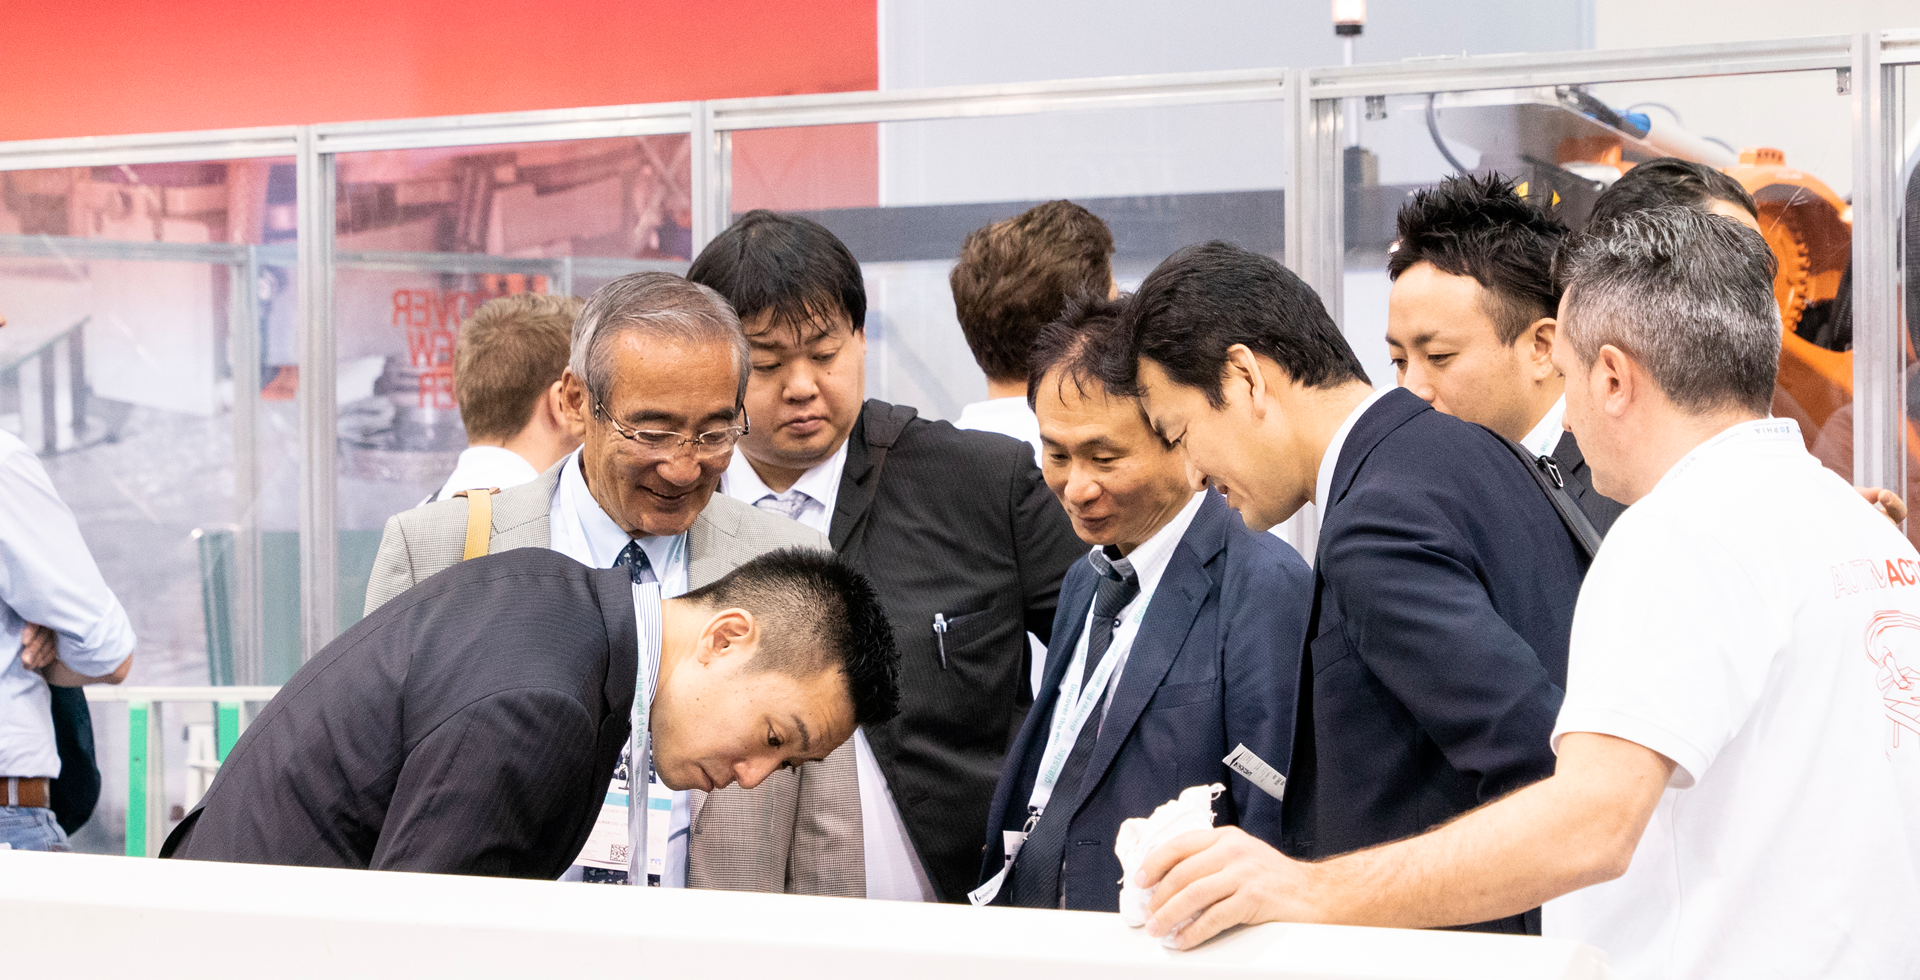 Intermac and Sorglas at CamEurasia Glass 2019